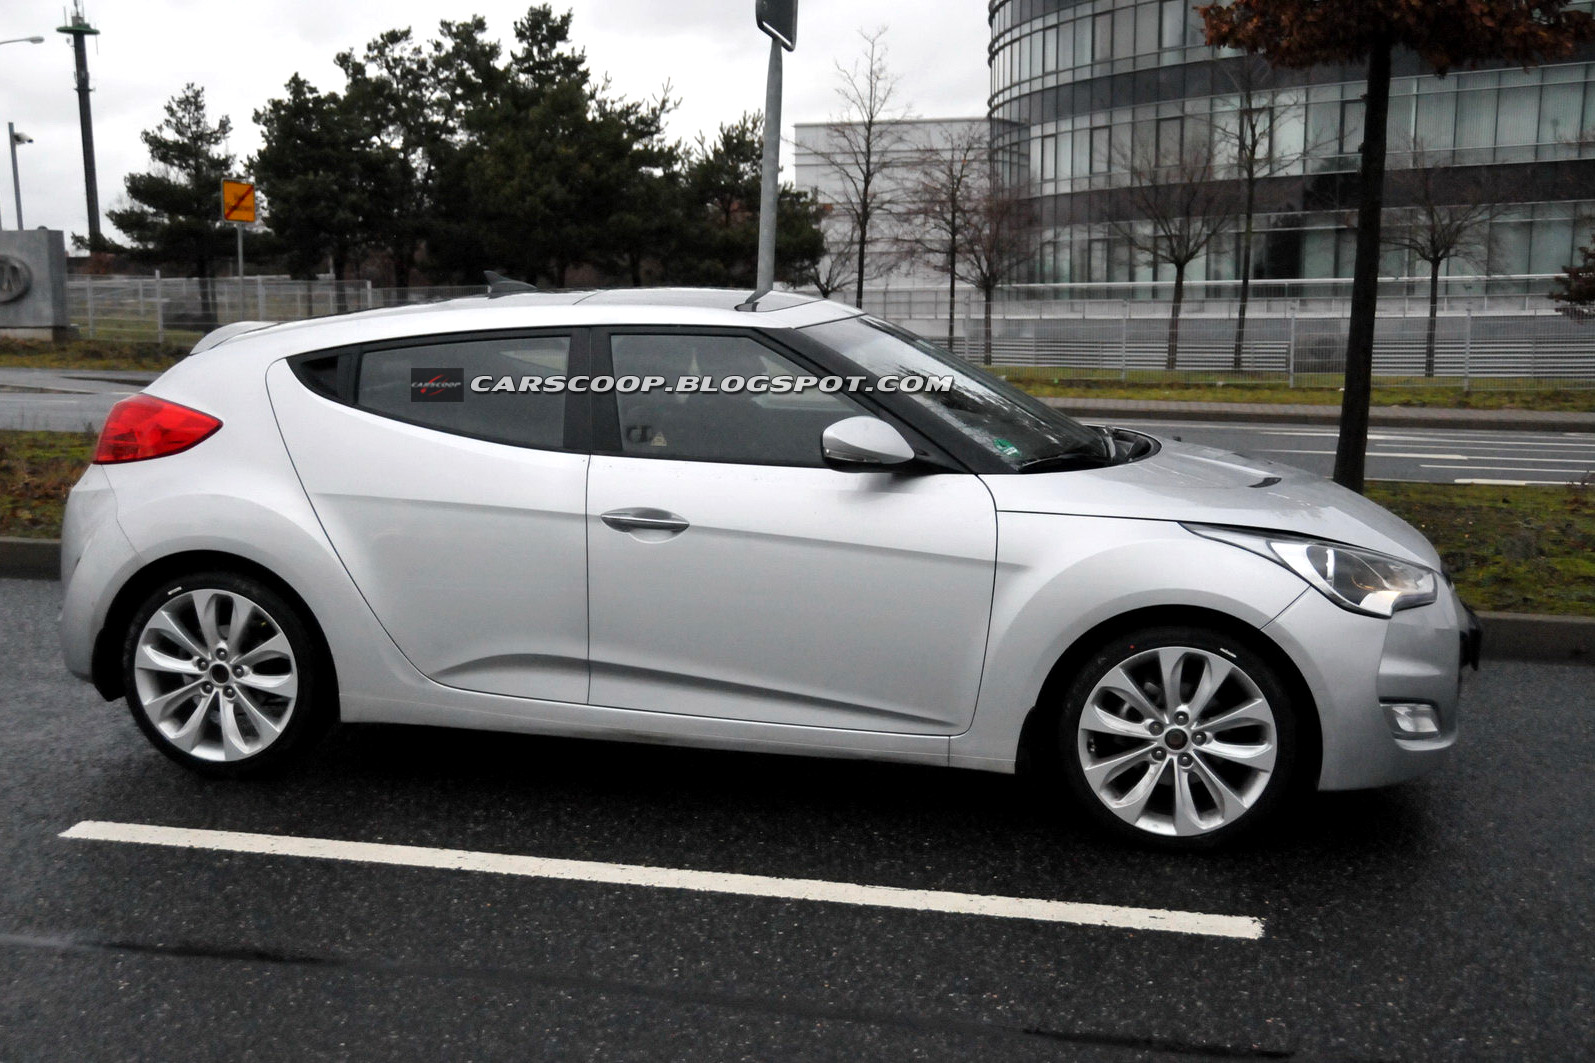 Hyundai Veloster 1.6 2012 photo - 4